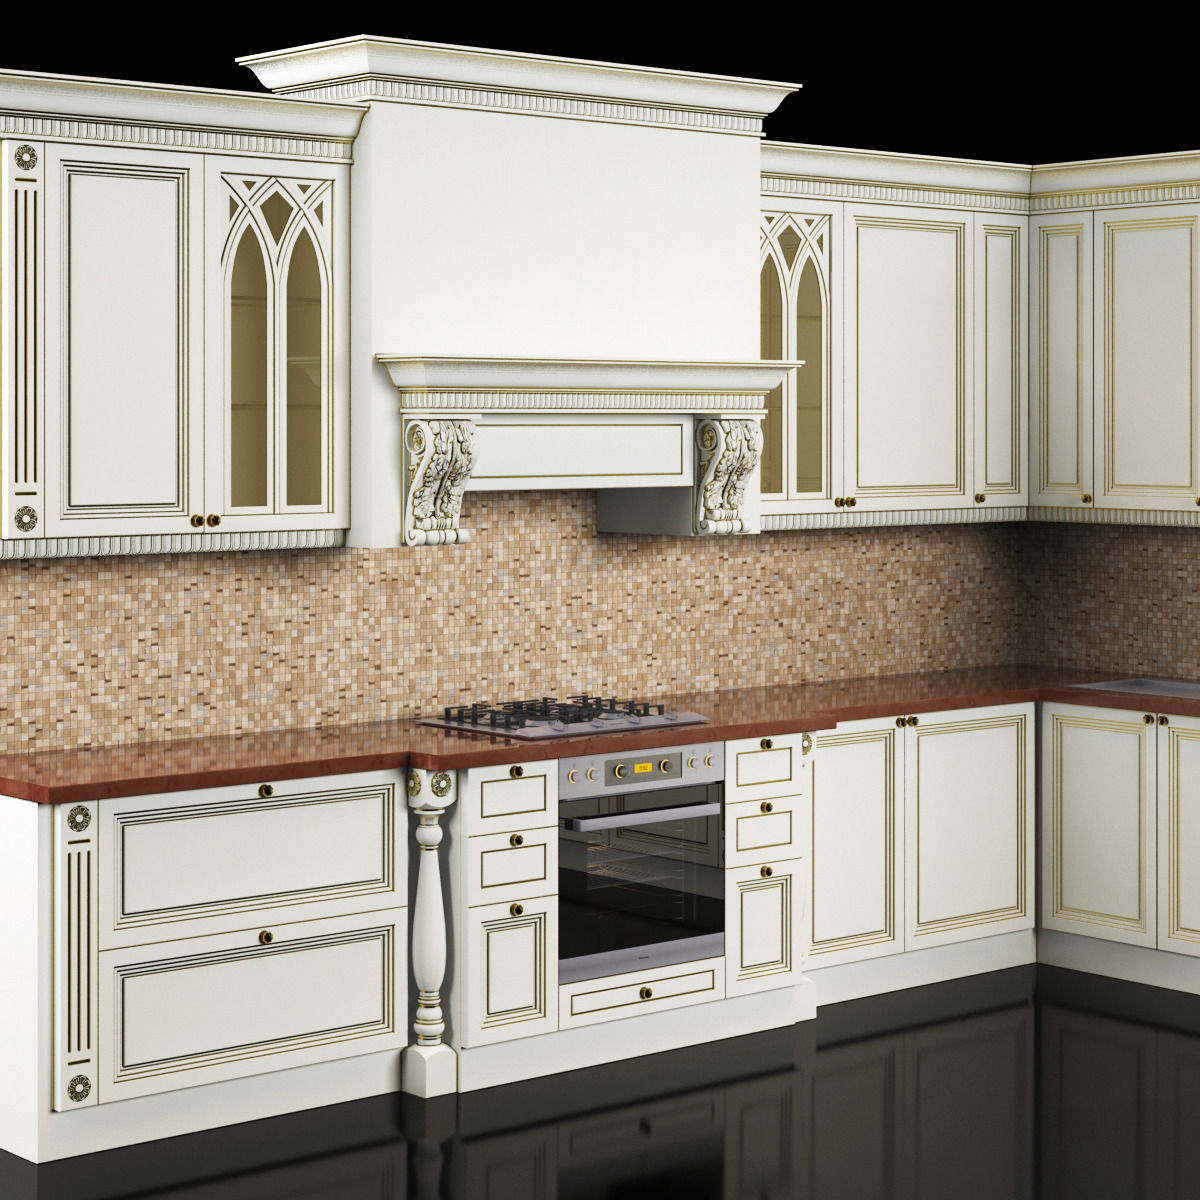 classic kitchen 3D Model MAX | CGTrader.com on Model Kitchen  id=78219